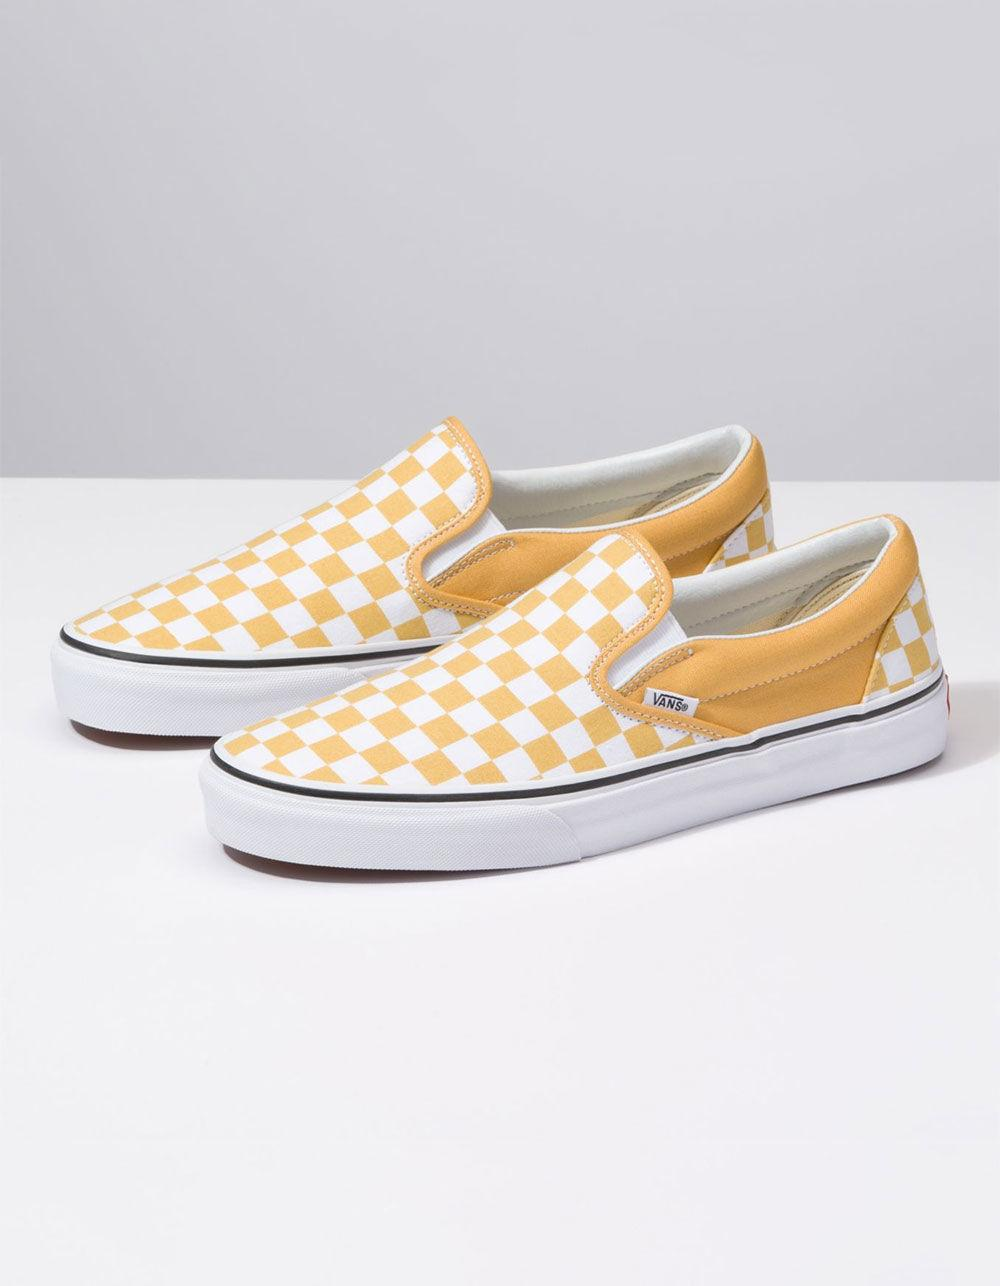 5efbb51ad0 Lyst - Vans Checkerboard Classic Slip-on Ochre   True White Shoes in White